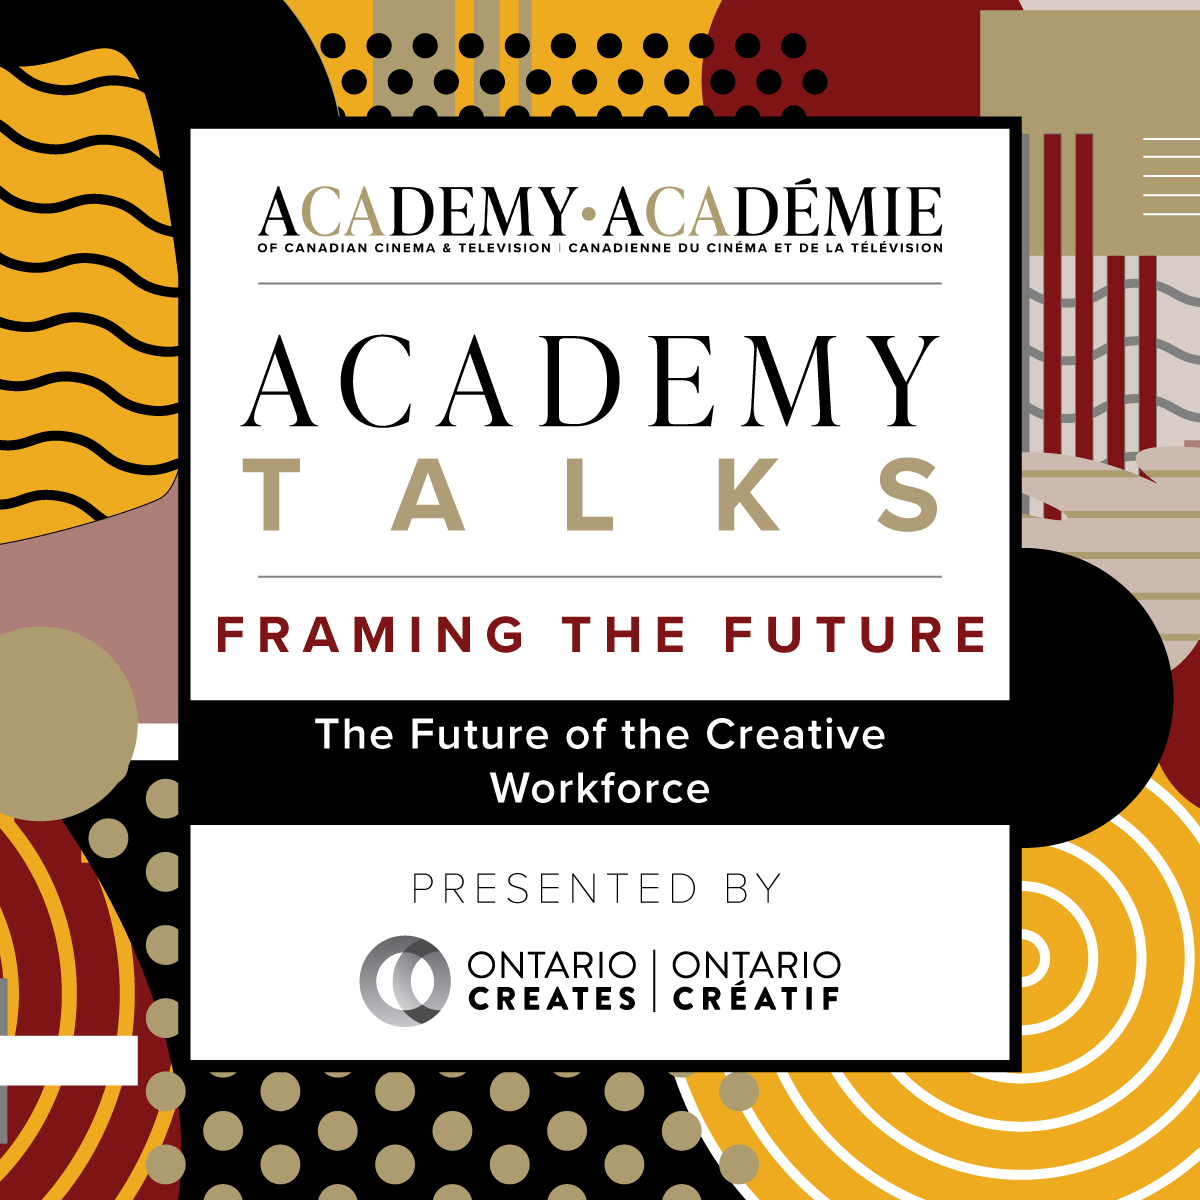 Academy Talks: Framing the Future | The Future of the Creative Workforce